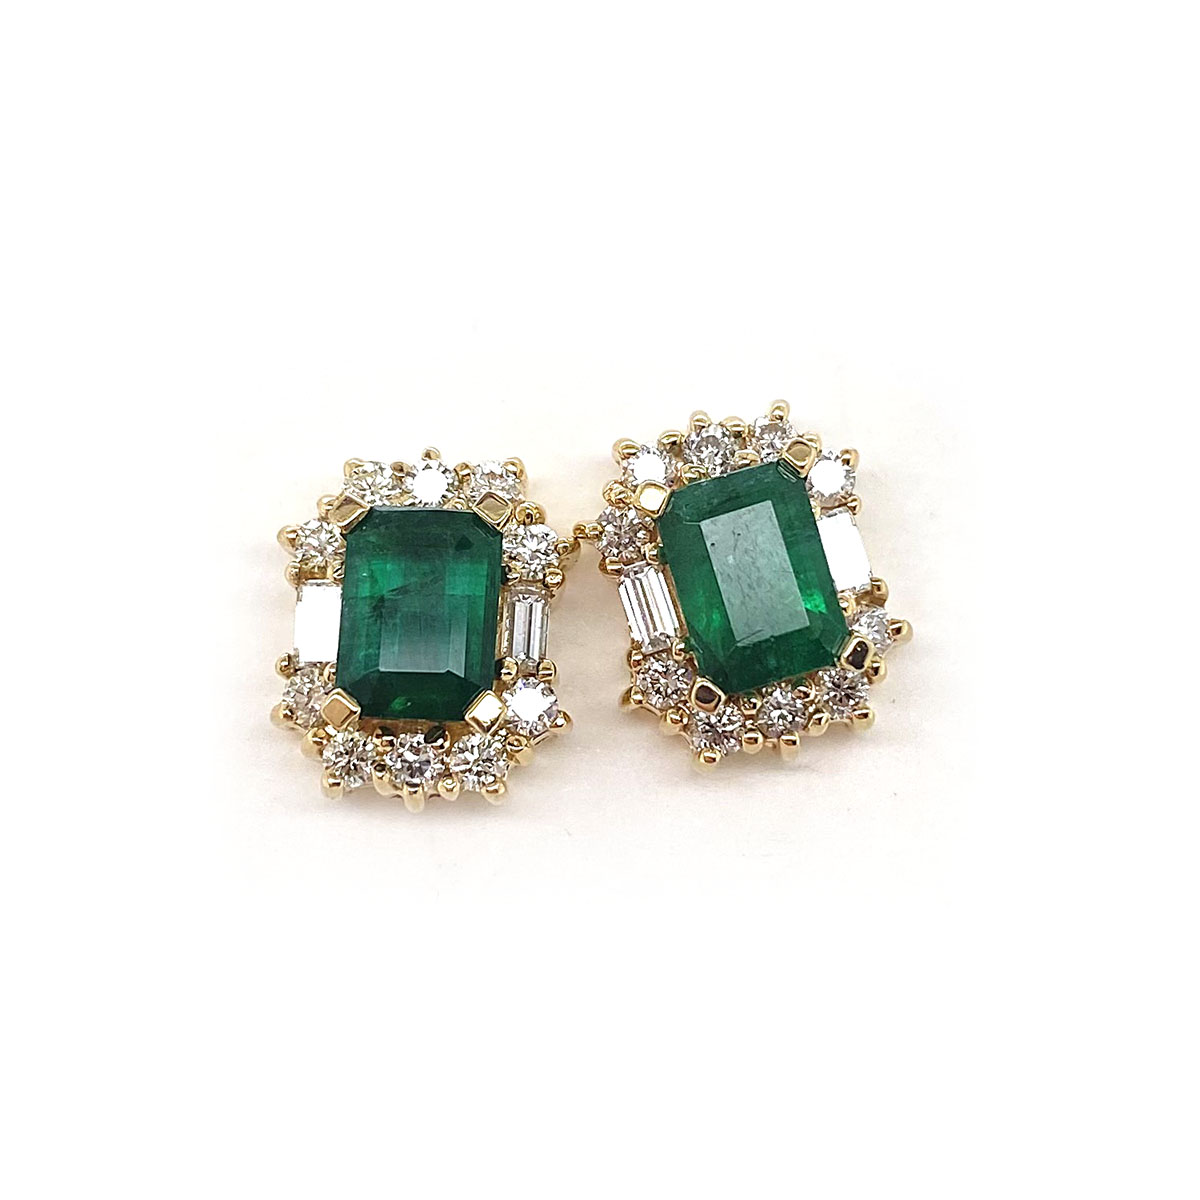 14 Karat Yellow Gold Emerald and Diamond Earrings